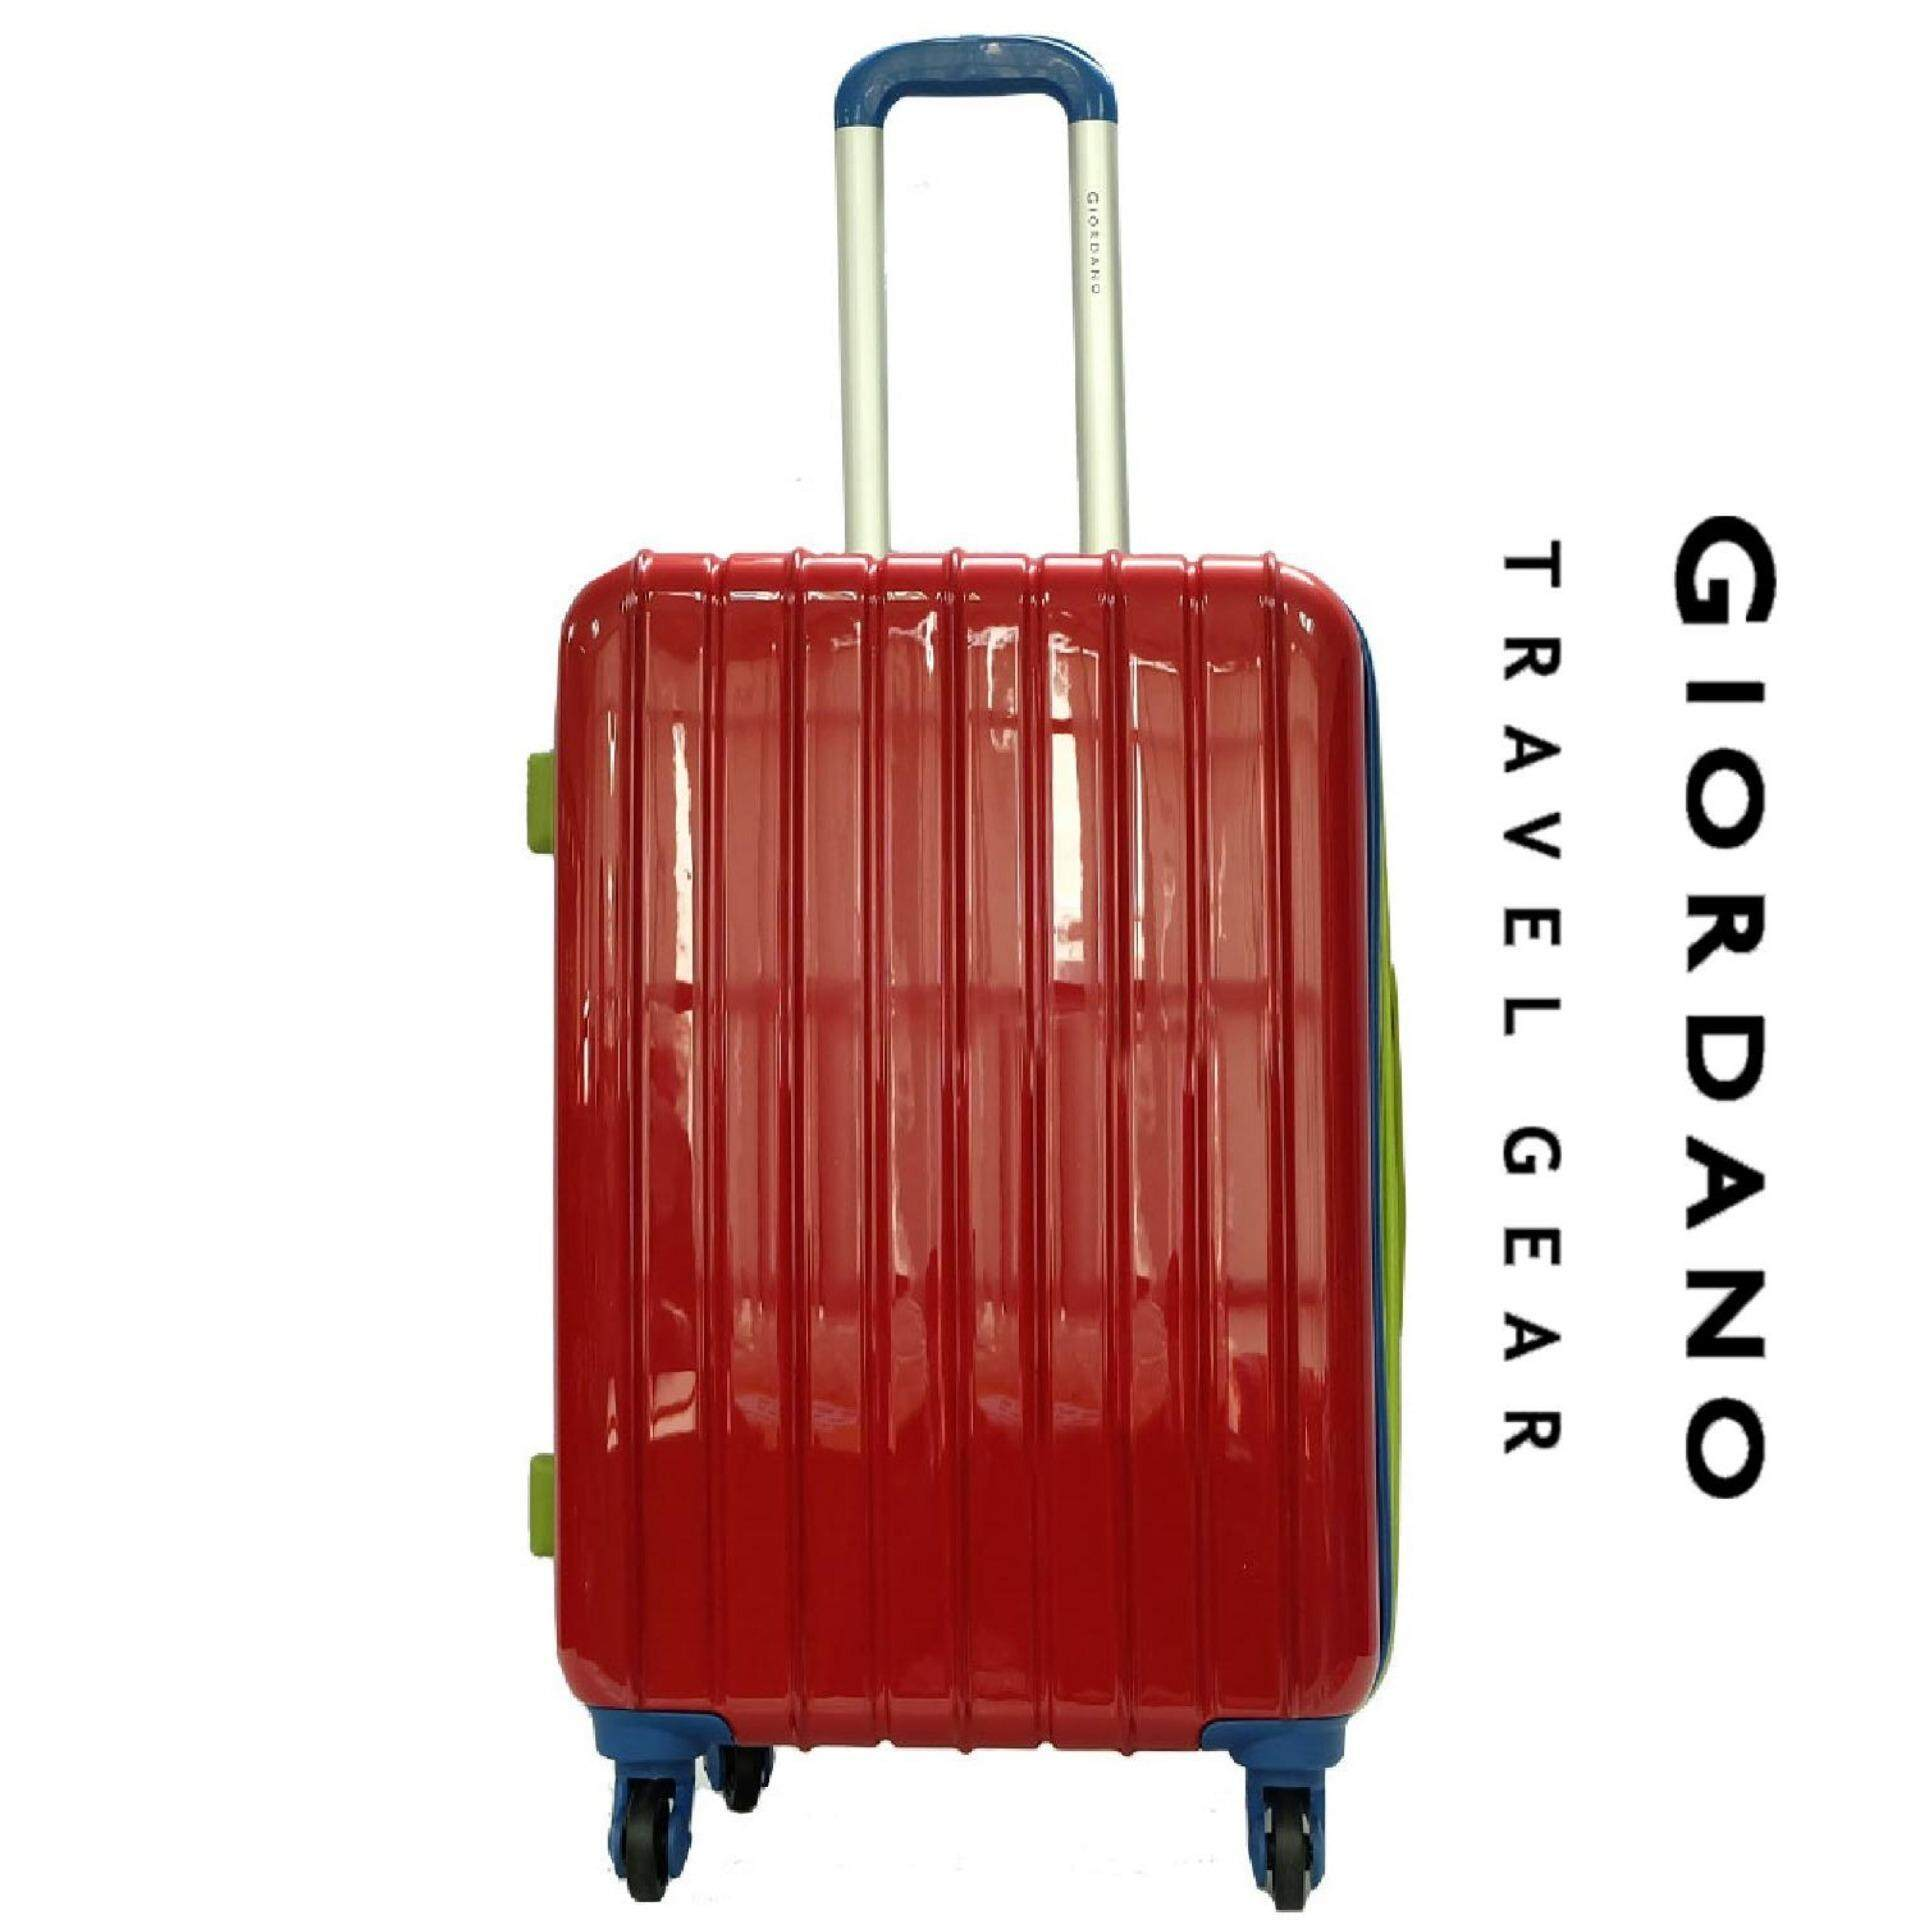 Giordano GAD1232 24 inches MULTICOLOR PC Hard Case w Expander- 4W Red